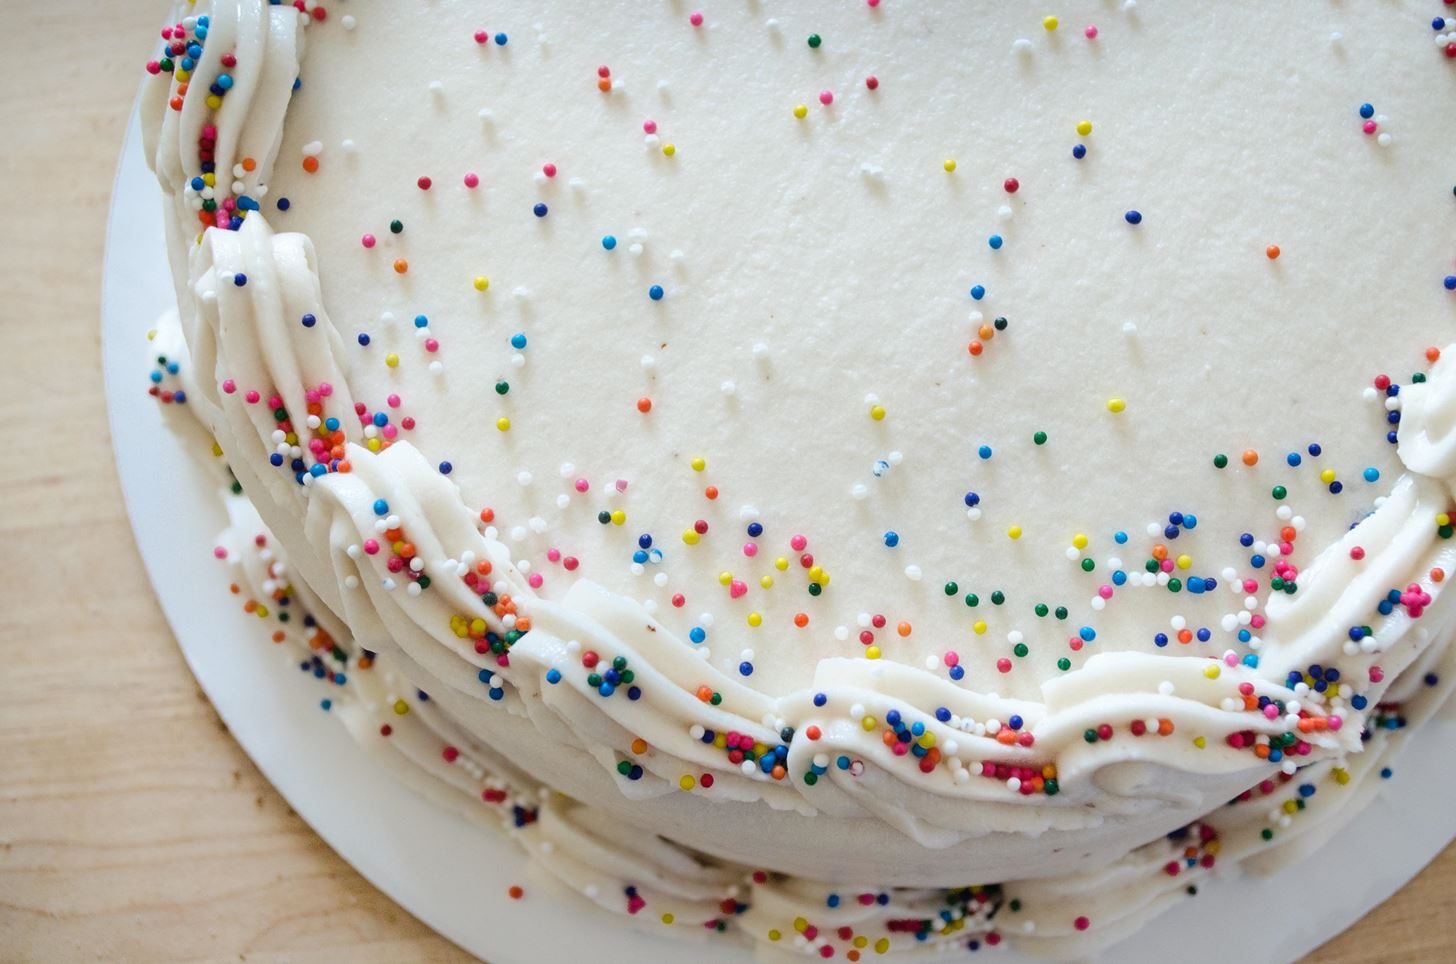 Skip The Fondantmake Picture Perfect Cakes With Paper Towels